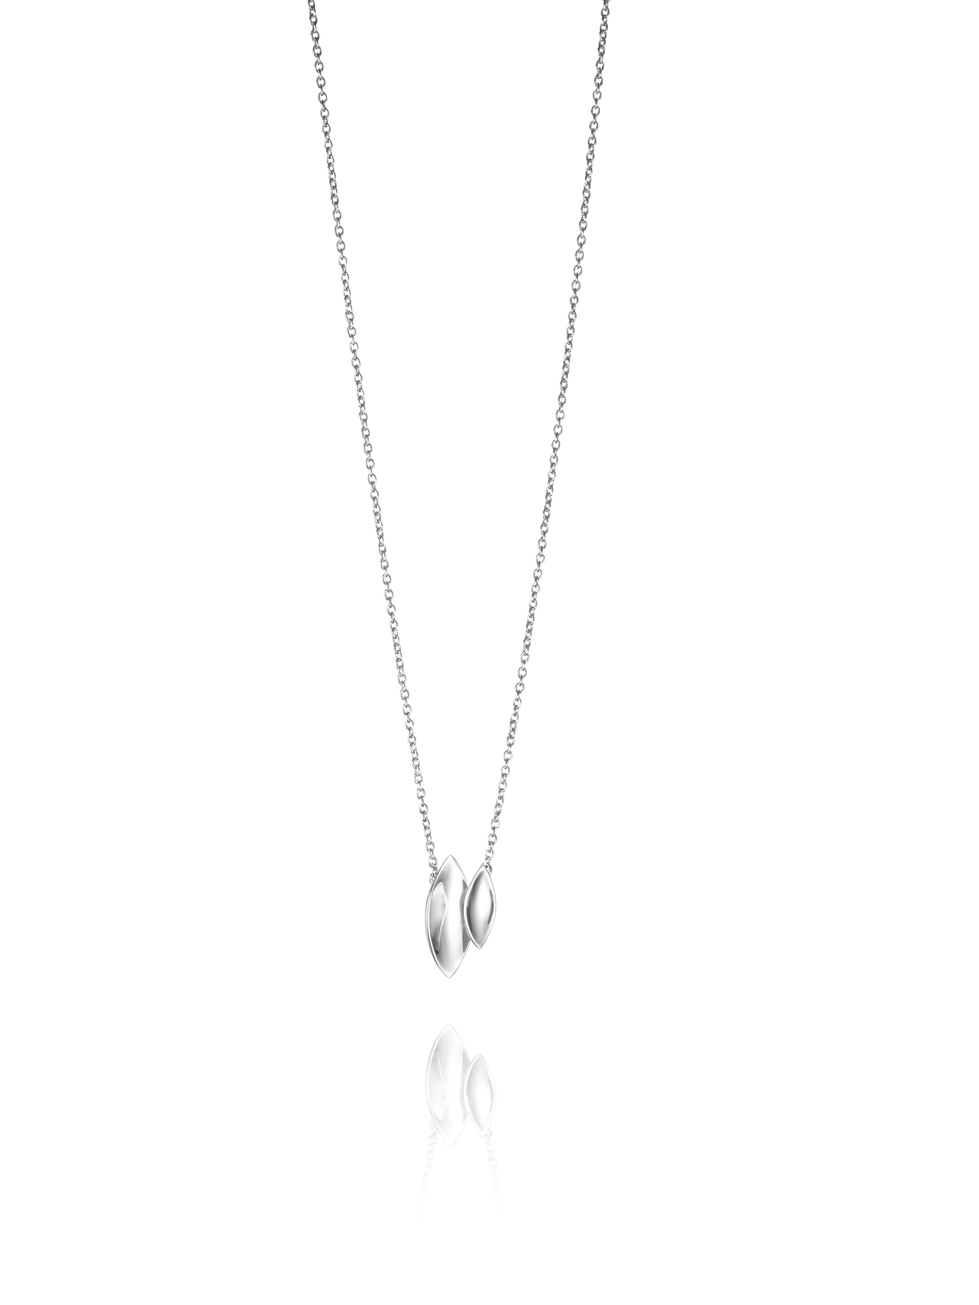 Navette Necklace 10-100-01412(2)